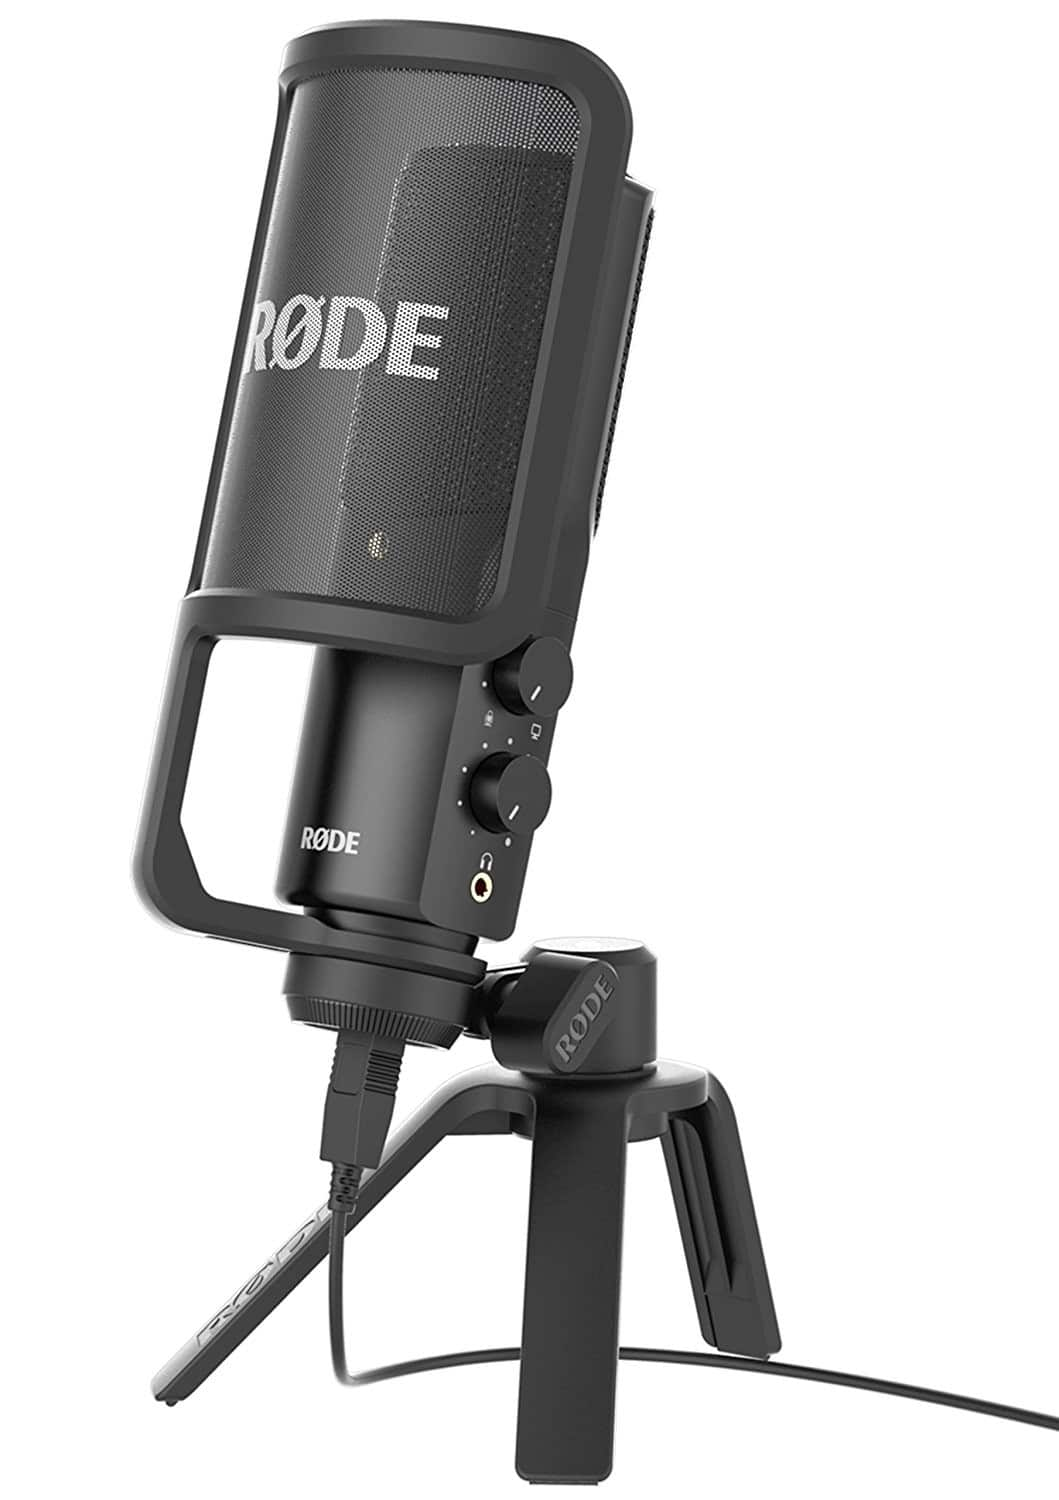 Rode NT-USB USB Condenser Microphone w/  Pop Filter $134 + free s/h